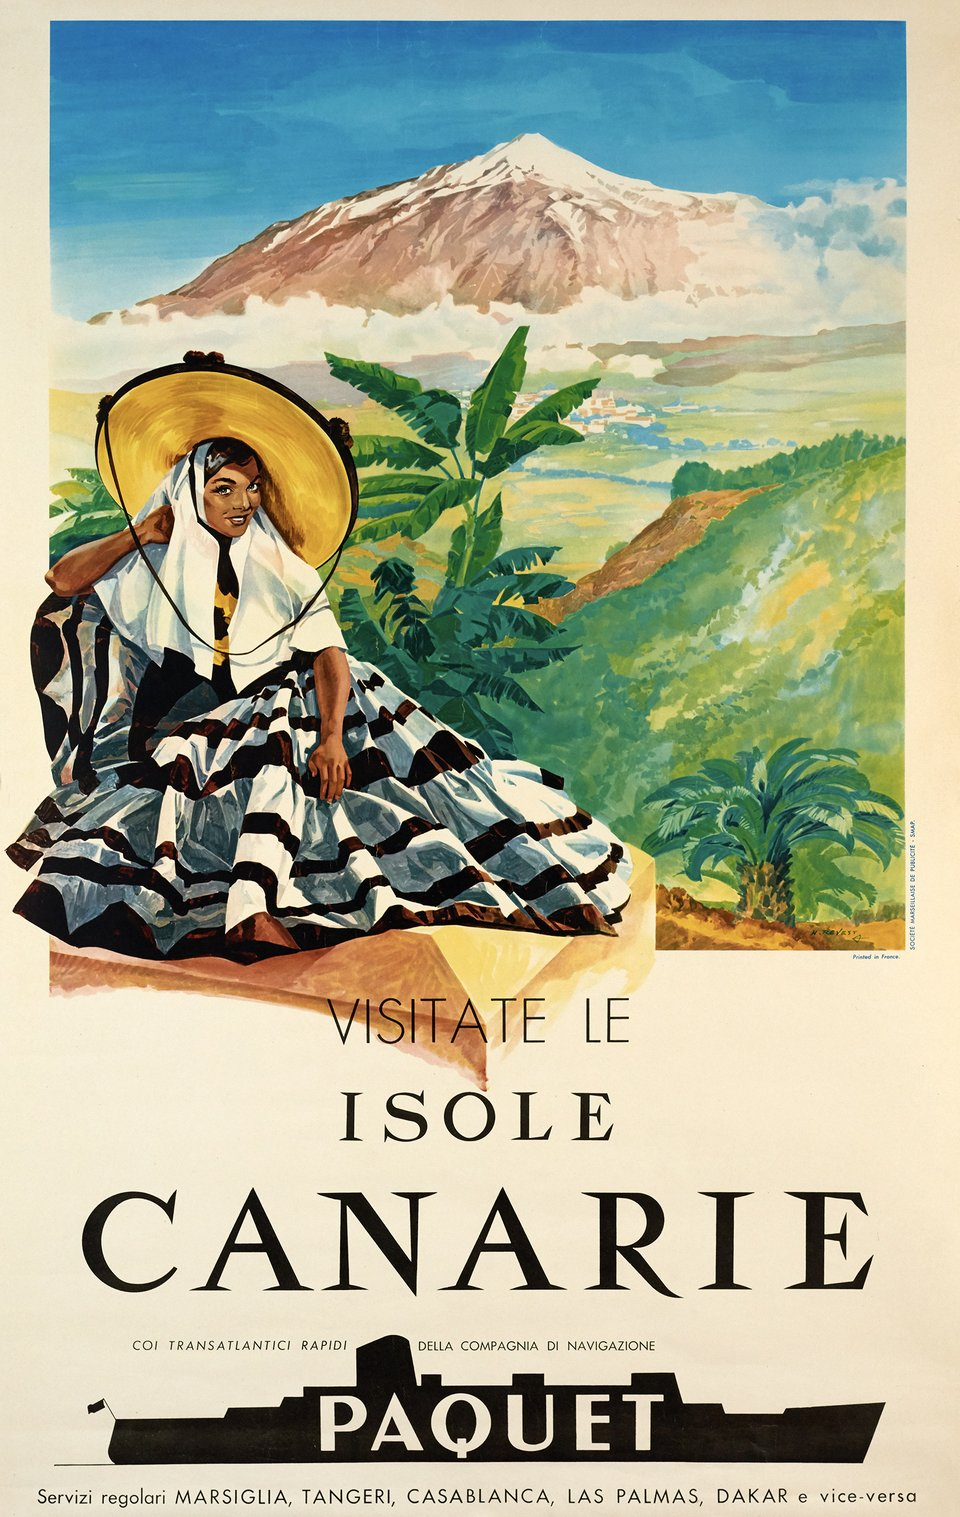 Visitate le Isole Canarie, Paquet – Affiche ancienne – NEVEST – 1959